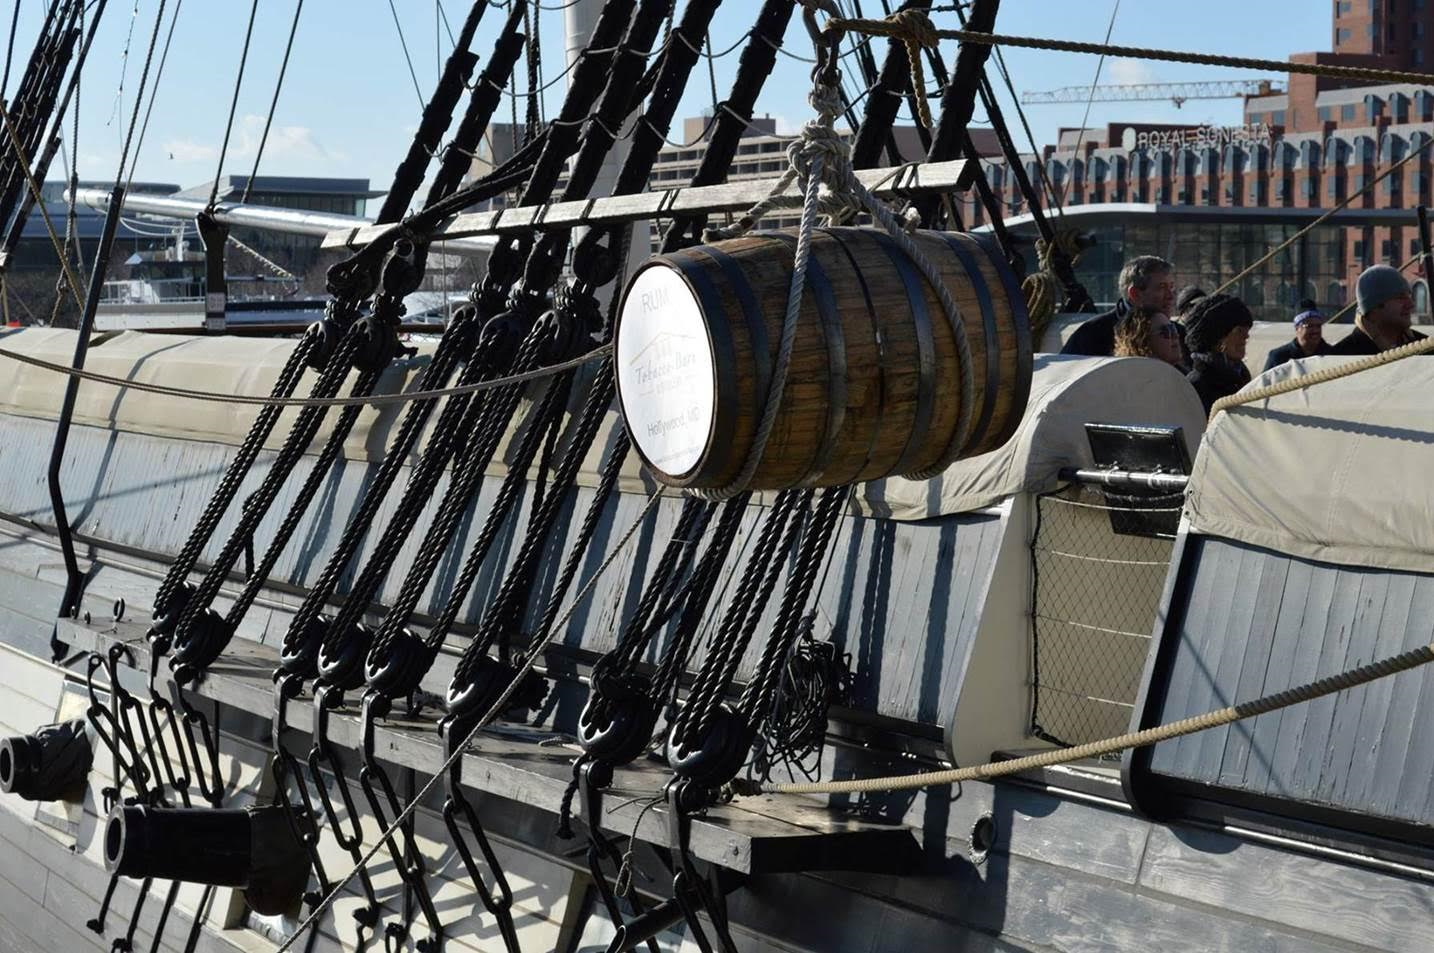 Down in the hold of the historic U.S.S. Constellation in Baltimore's Inner Harbor are four barrels of rum that have been aging on the ship for a year. (Courtesy Tobacco Barn Distillery)